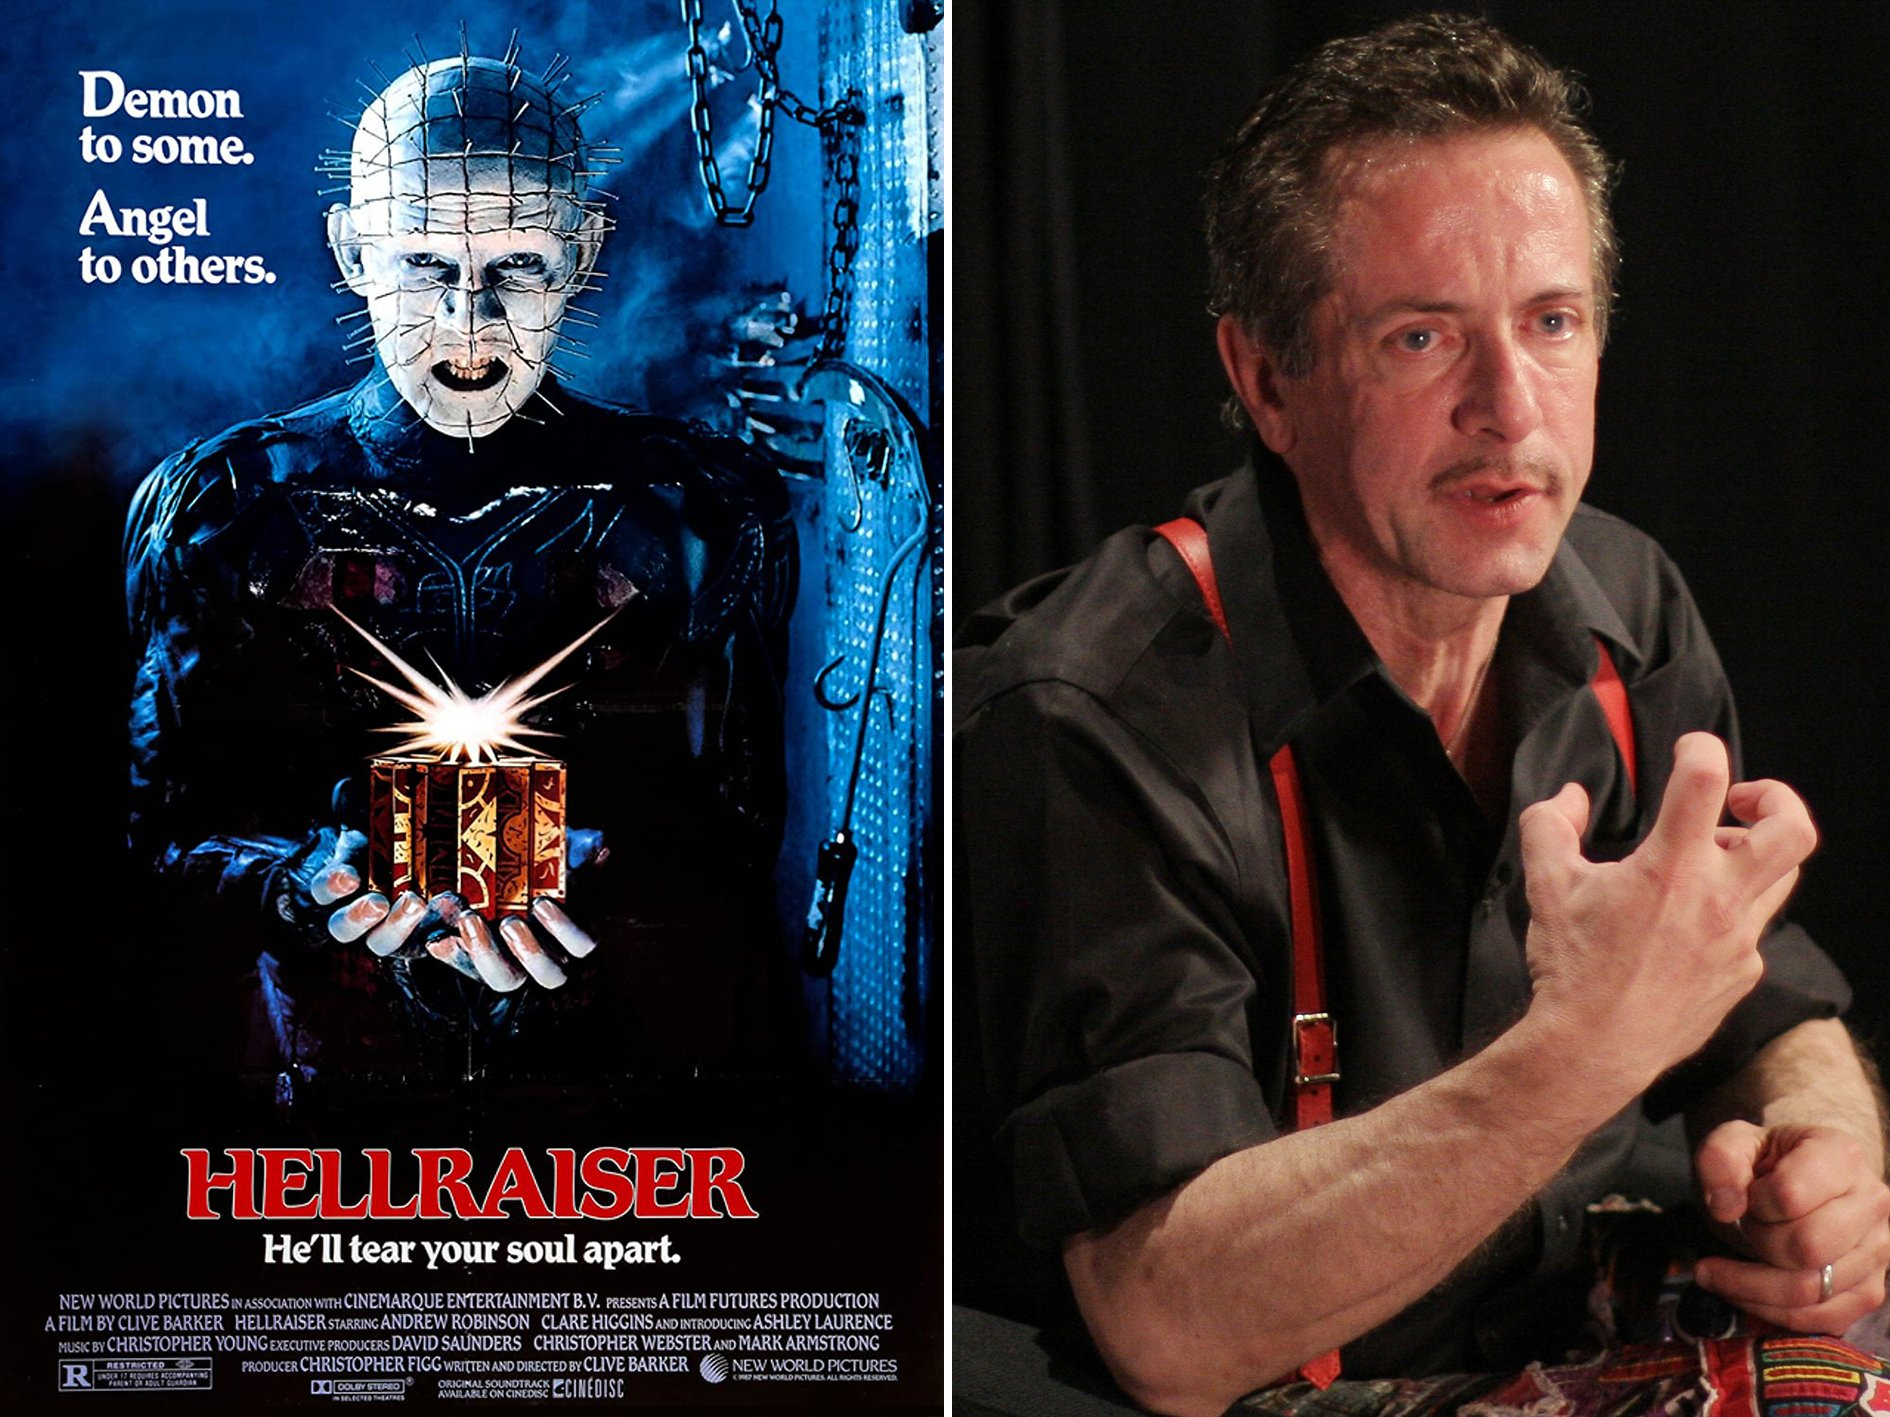 Hellraiser Clive Barker 20 Things You Didn't Know About Candyman